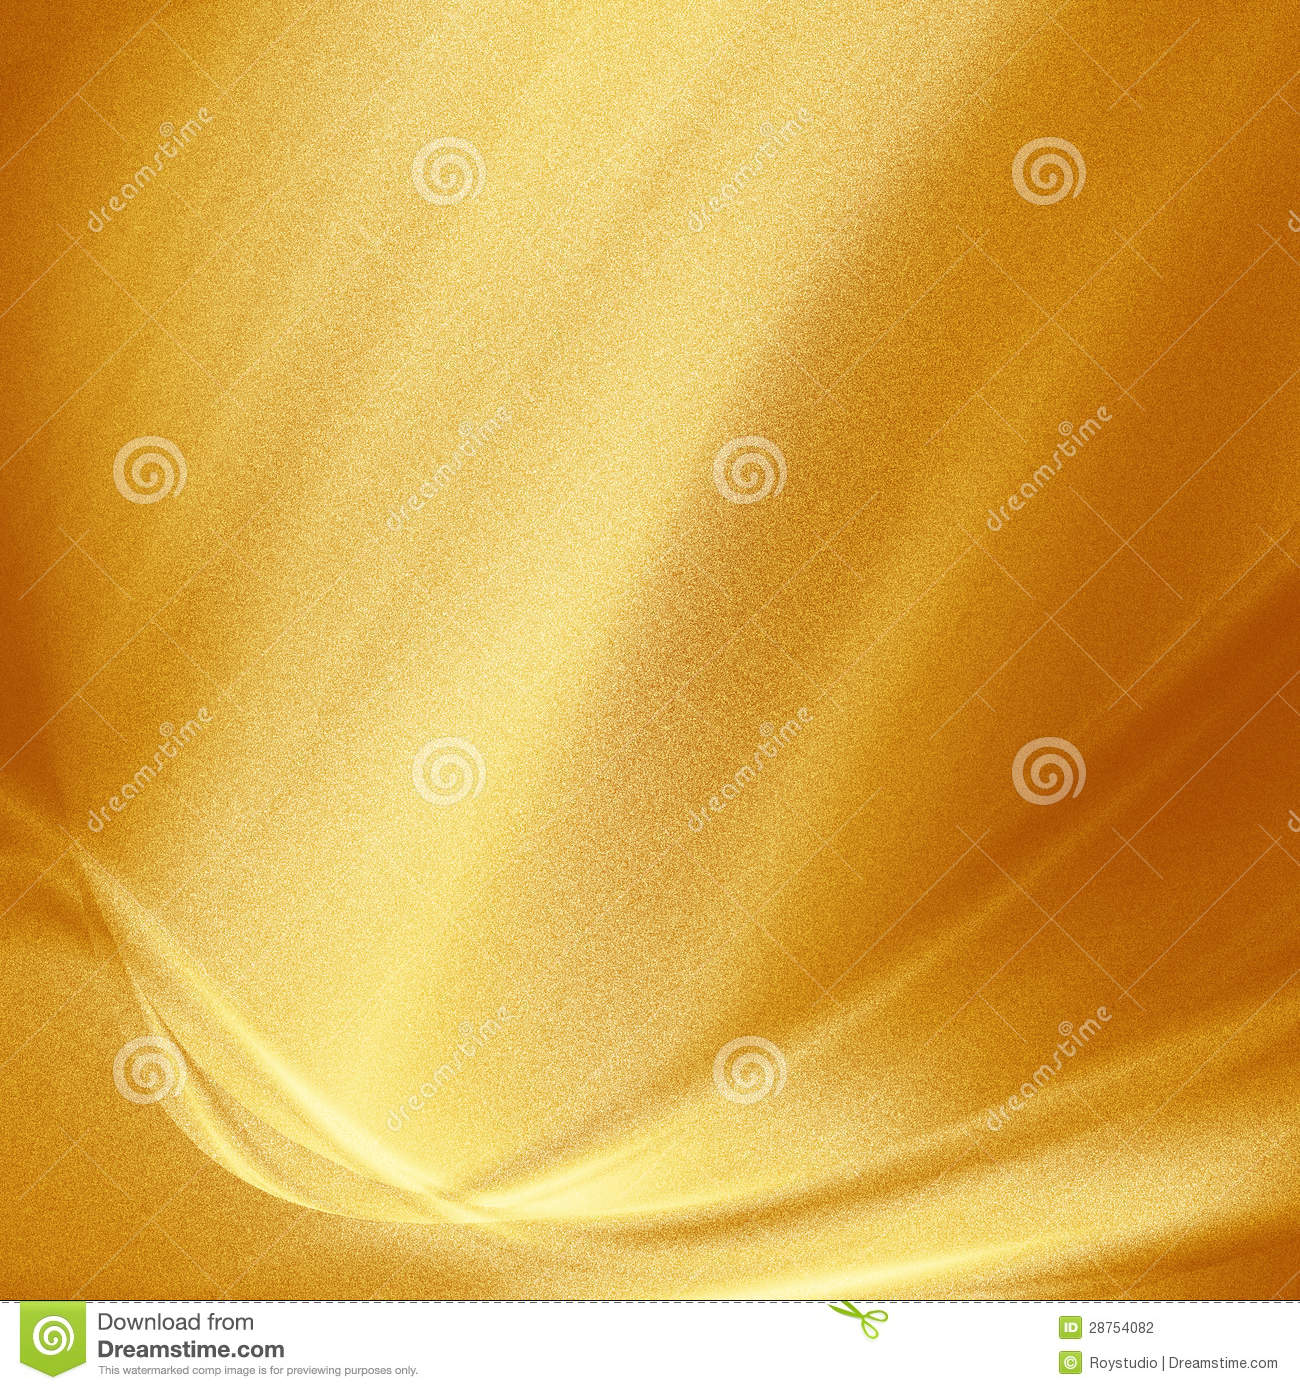 Gold metal background dotted texture